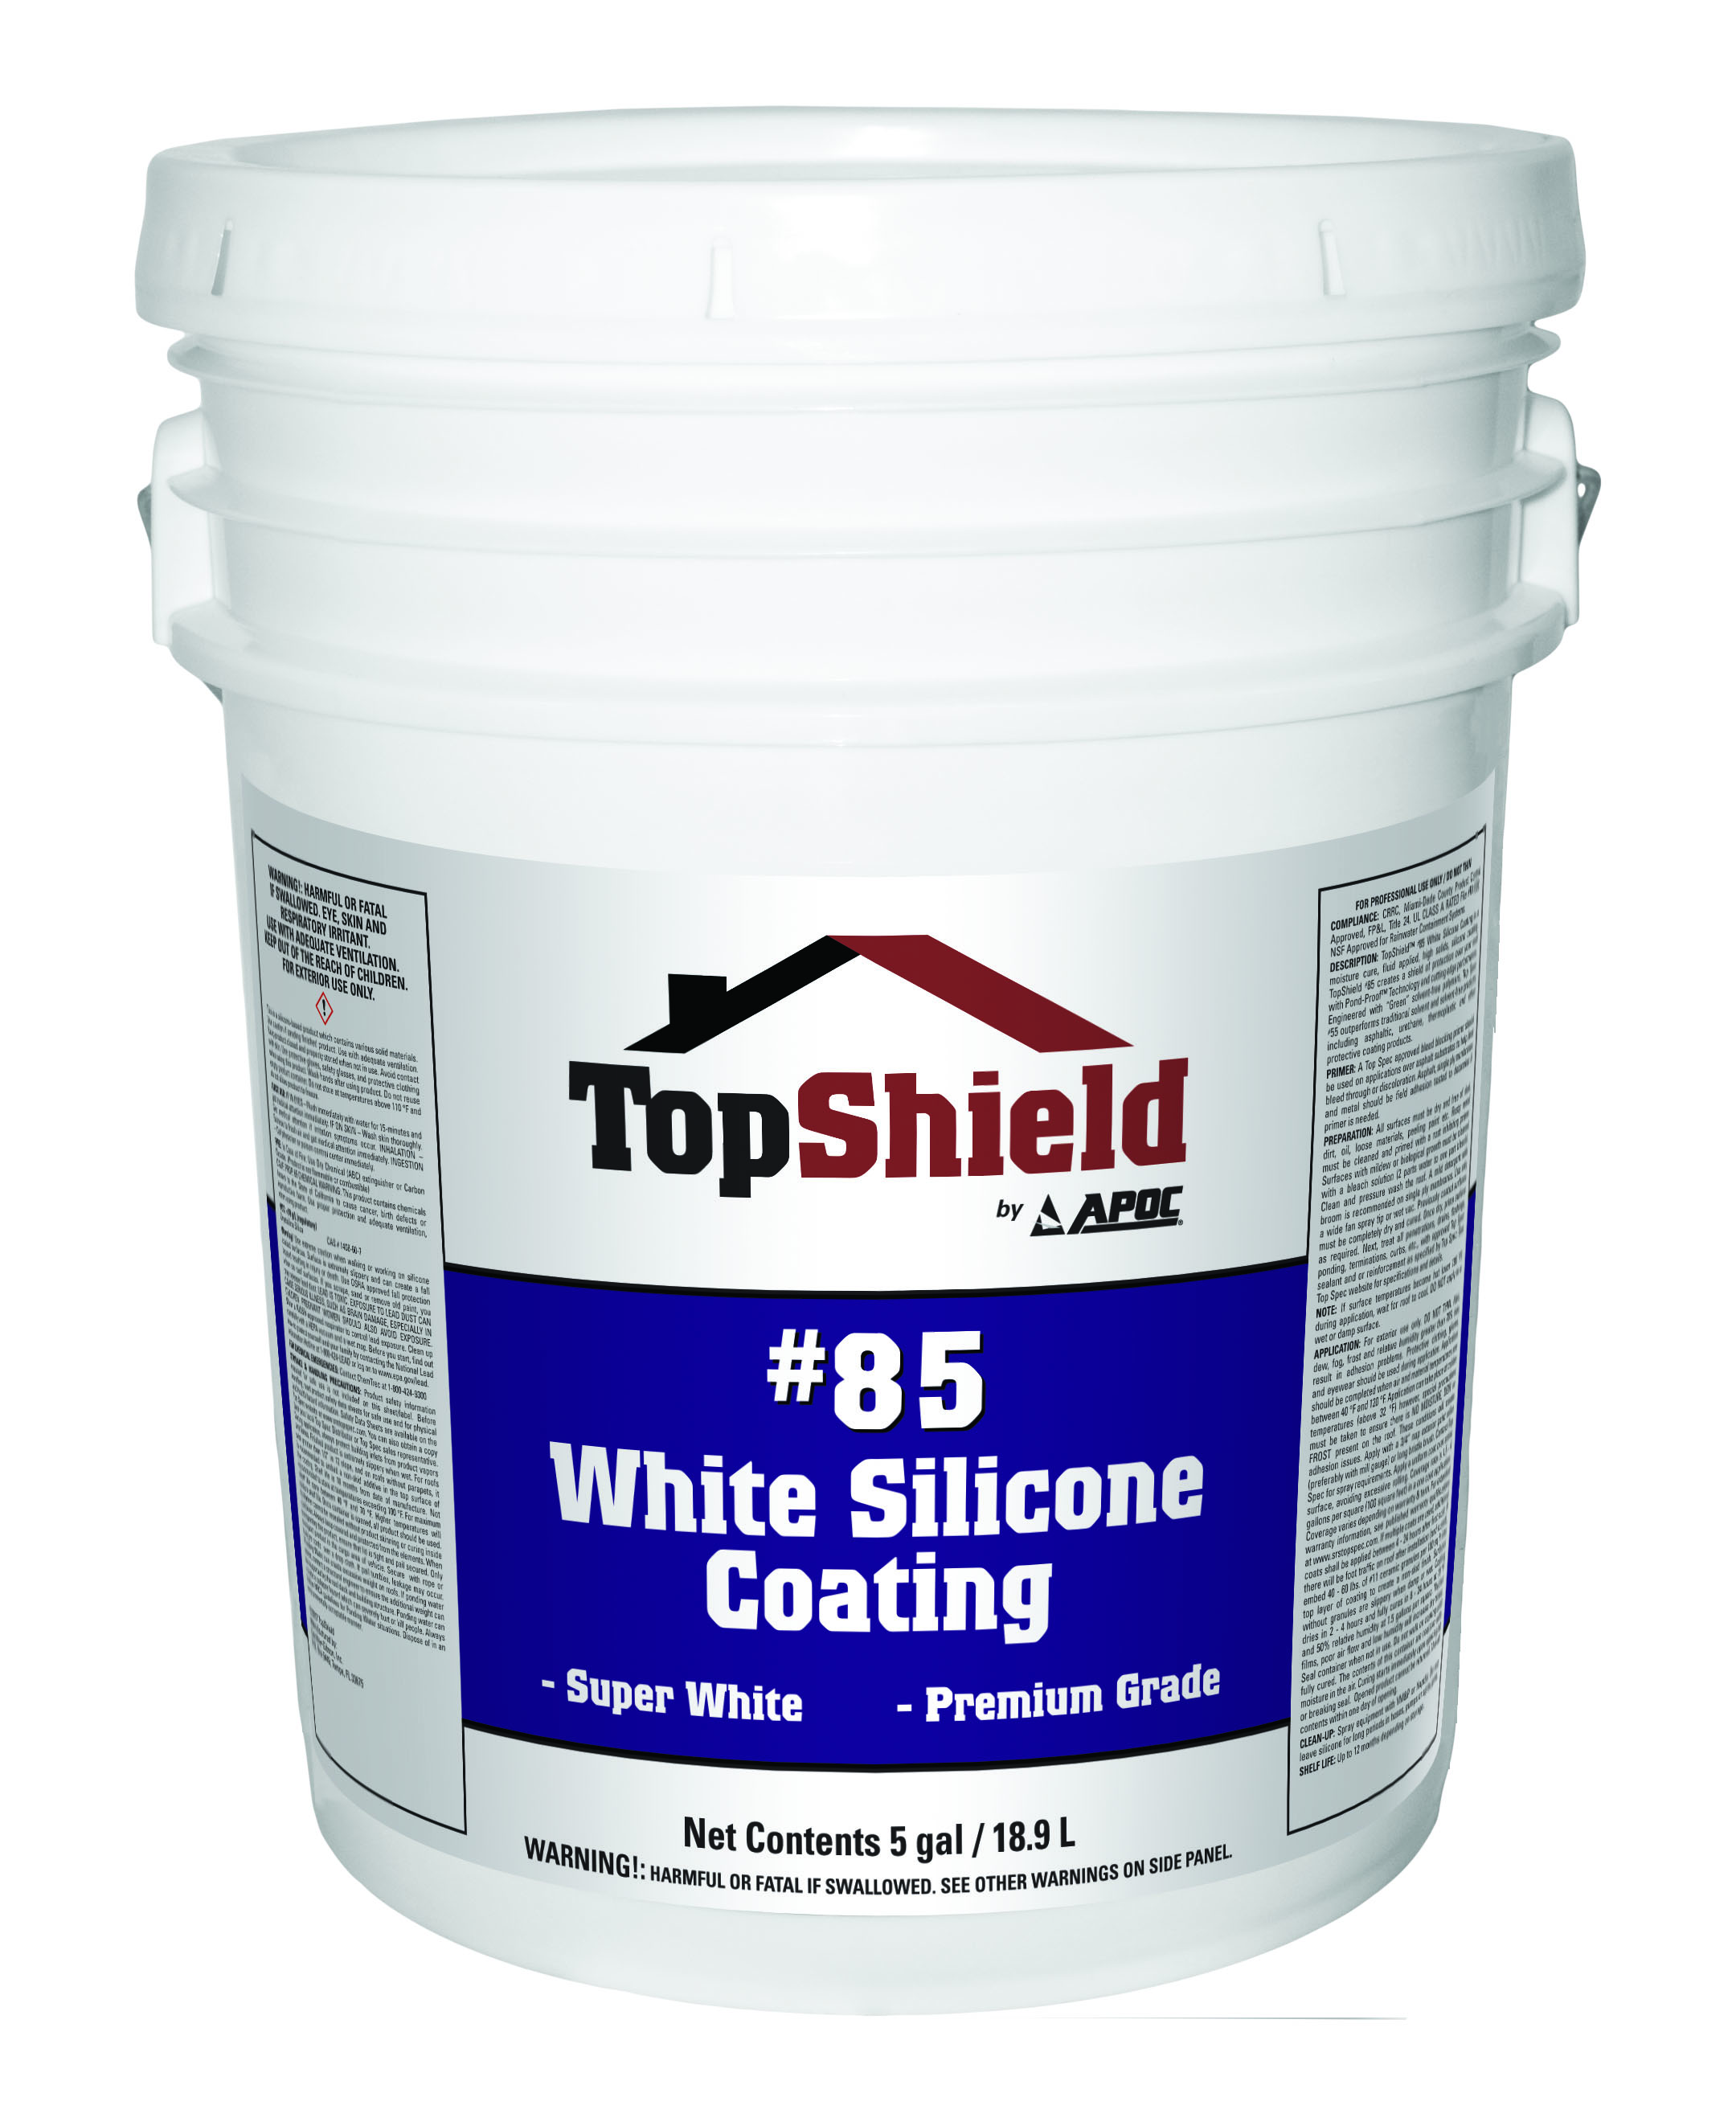 #85 White Silicone Coating